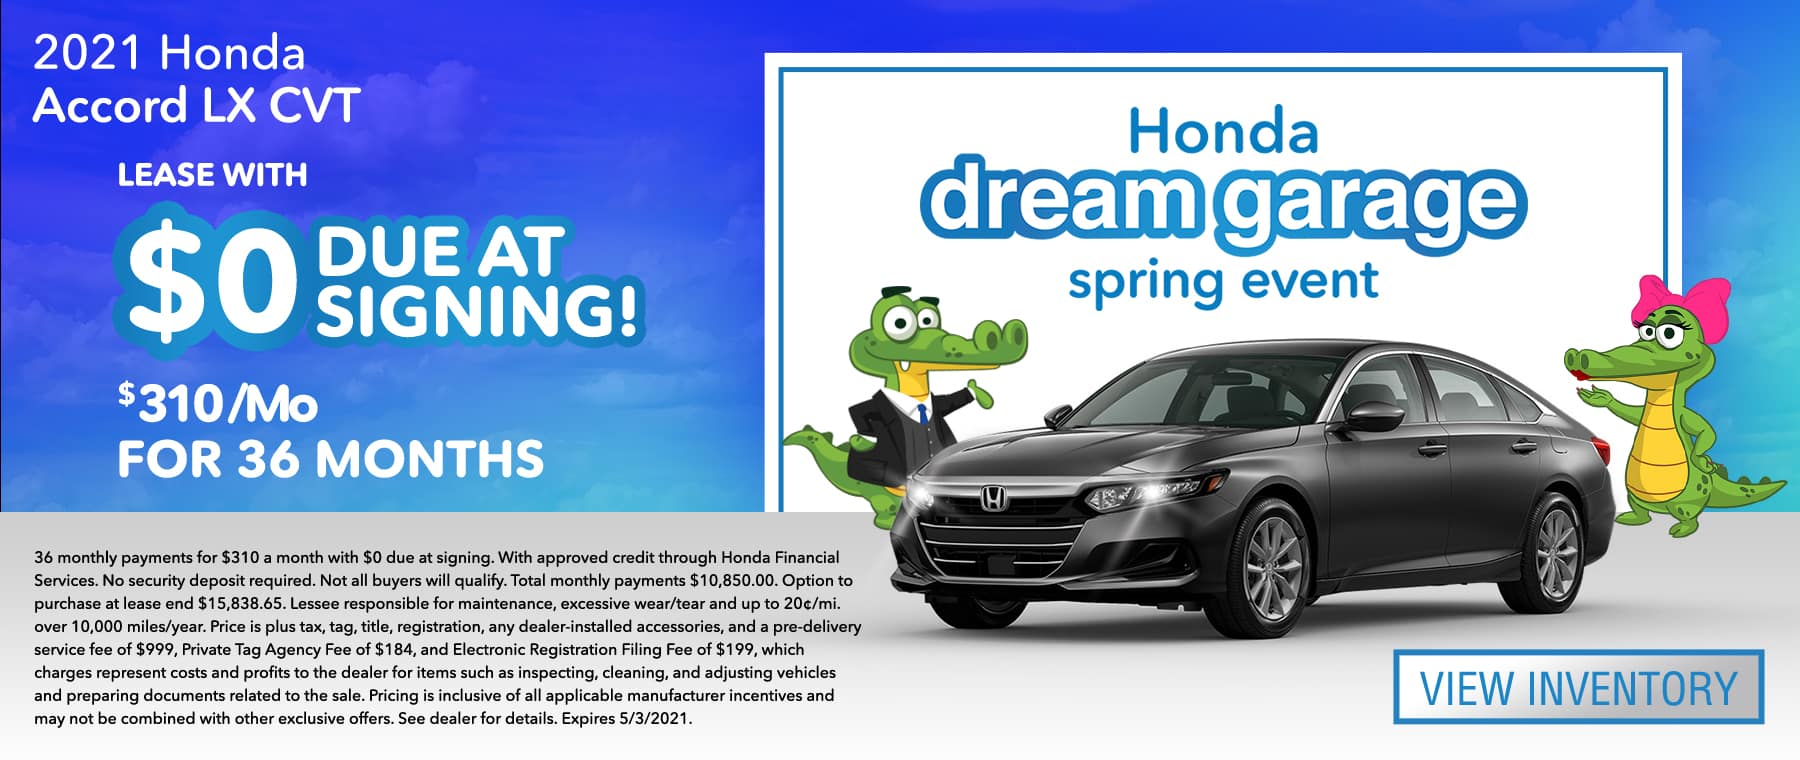 2021 Honda Accord LX CVT | Lease With $0 Due At Signing $310/Mo For 36 Months | Honda dream garage spring event